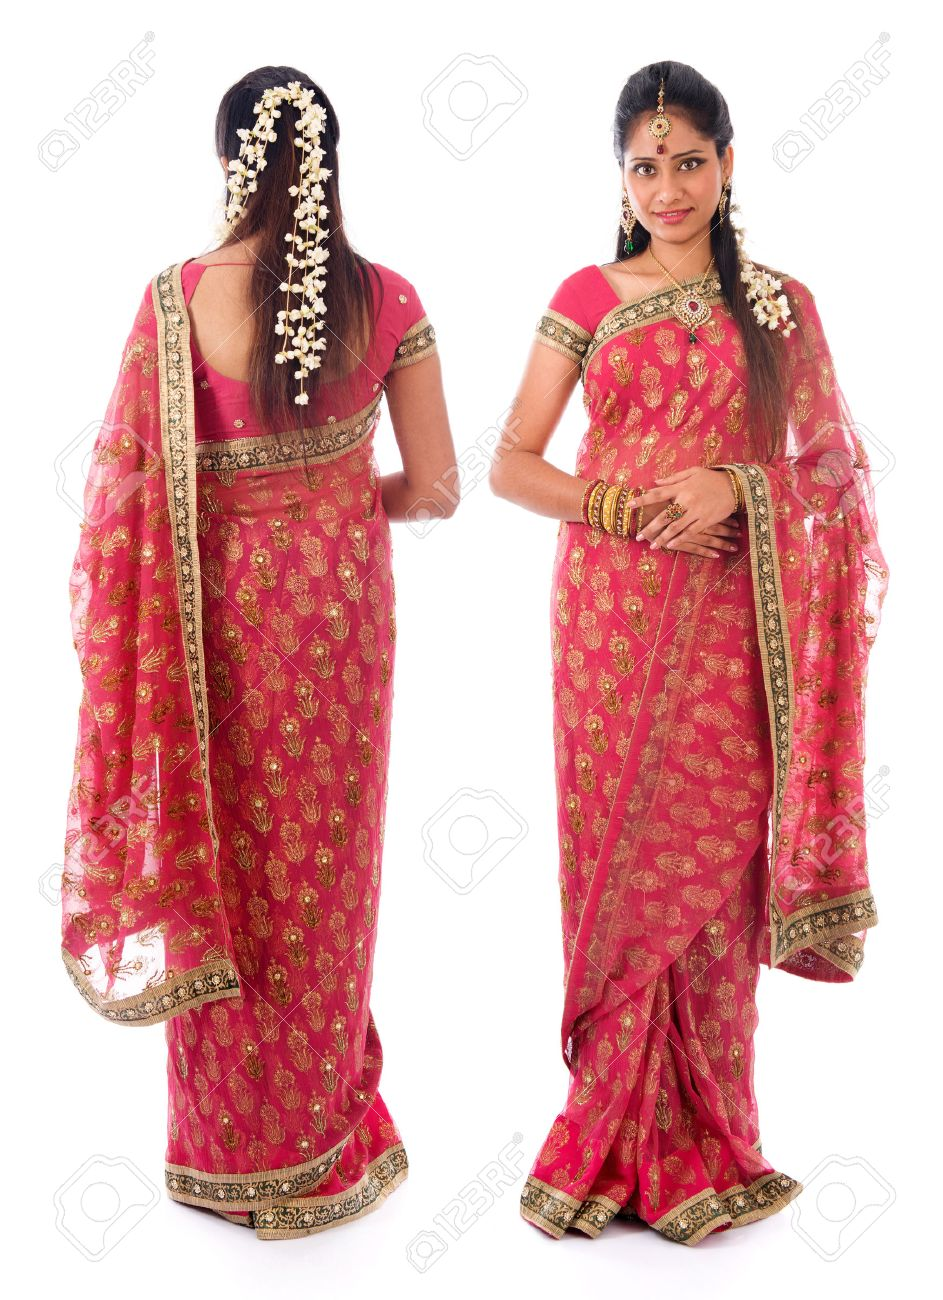 full body traditional indian girl in sari costume different angle